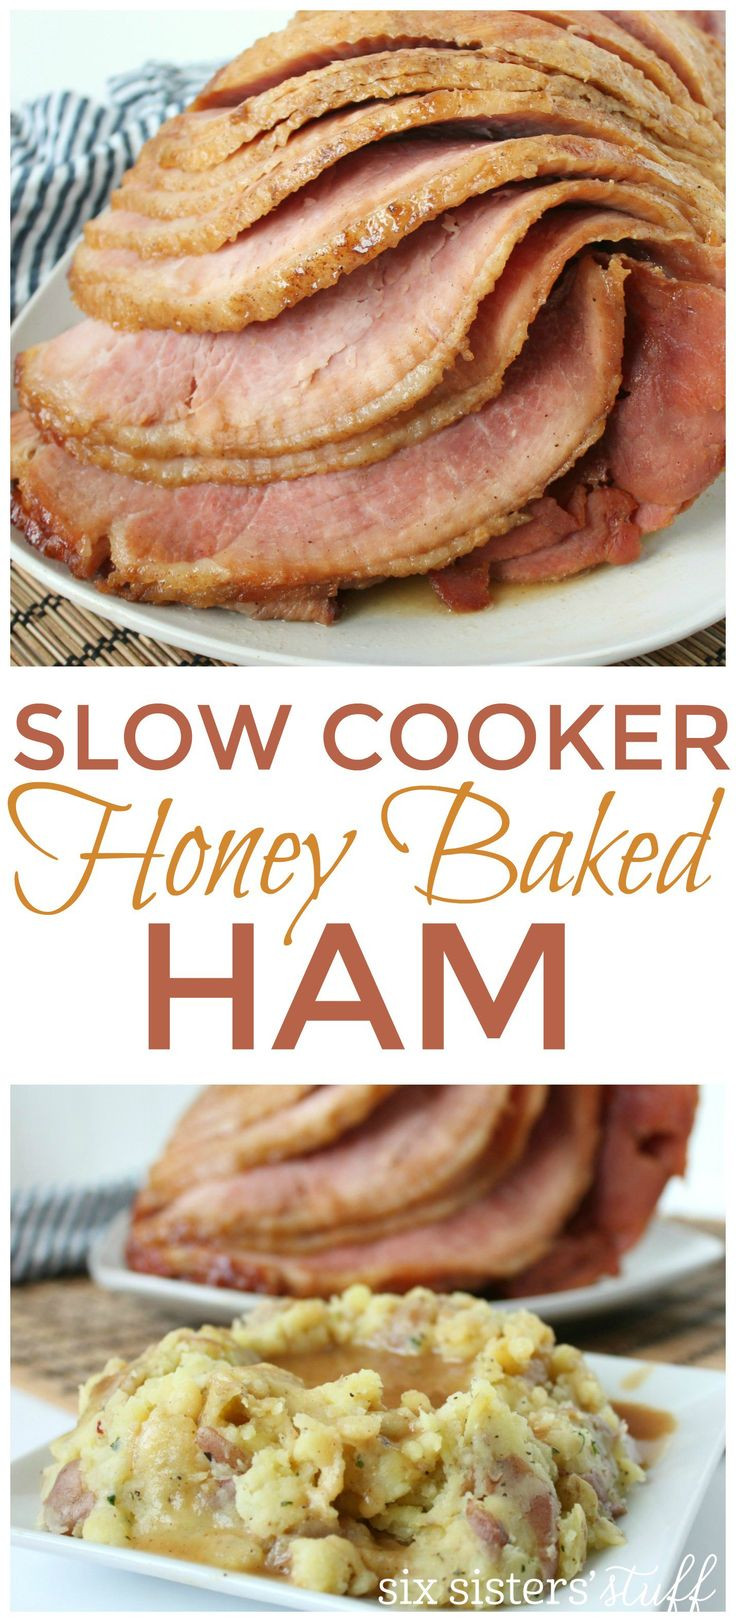 Ham Recipes For Thanksgiving  100 Baked Ham Recipes on Pinterest